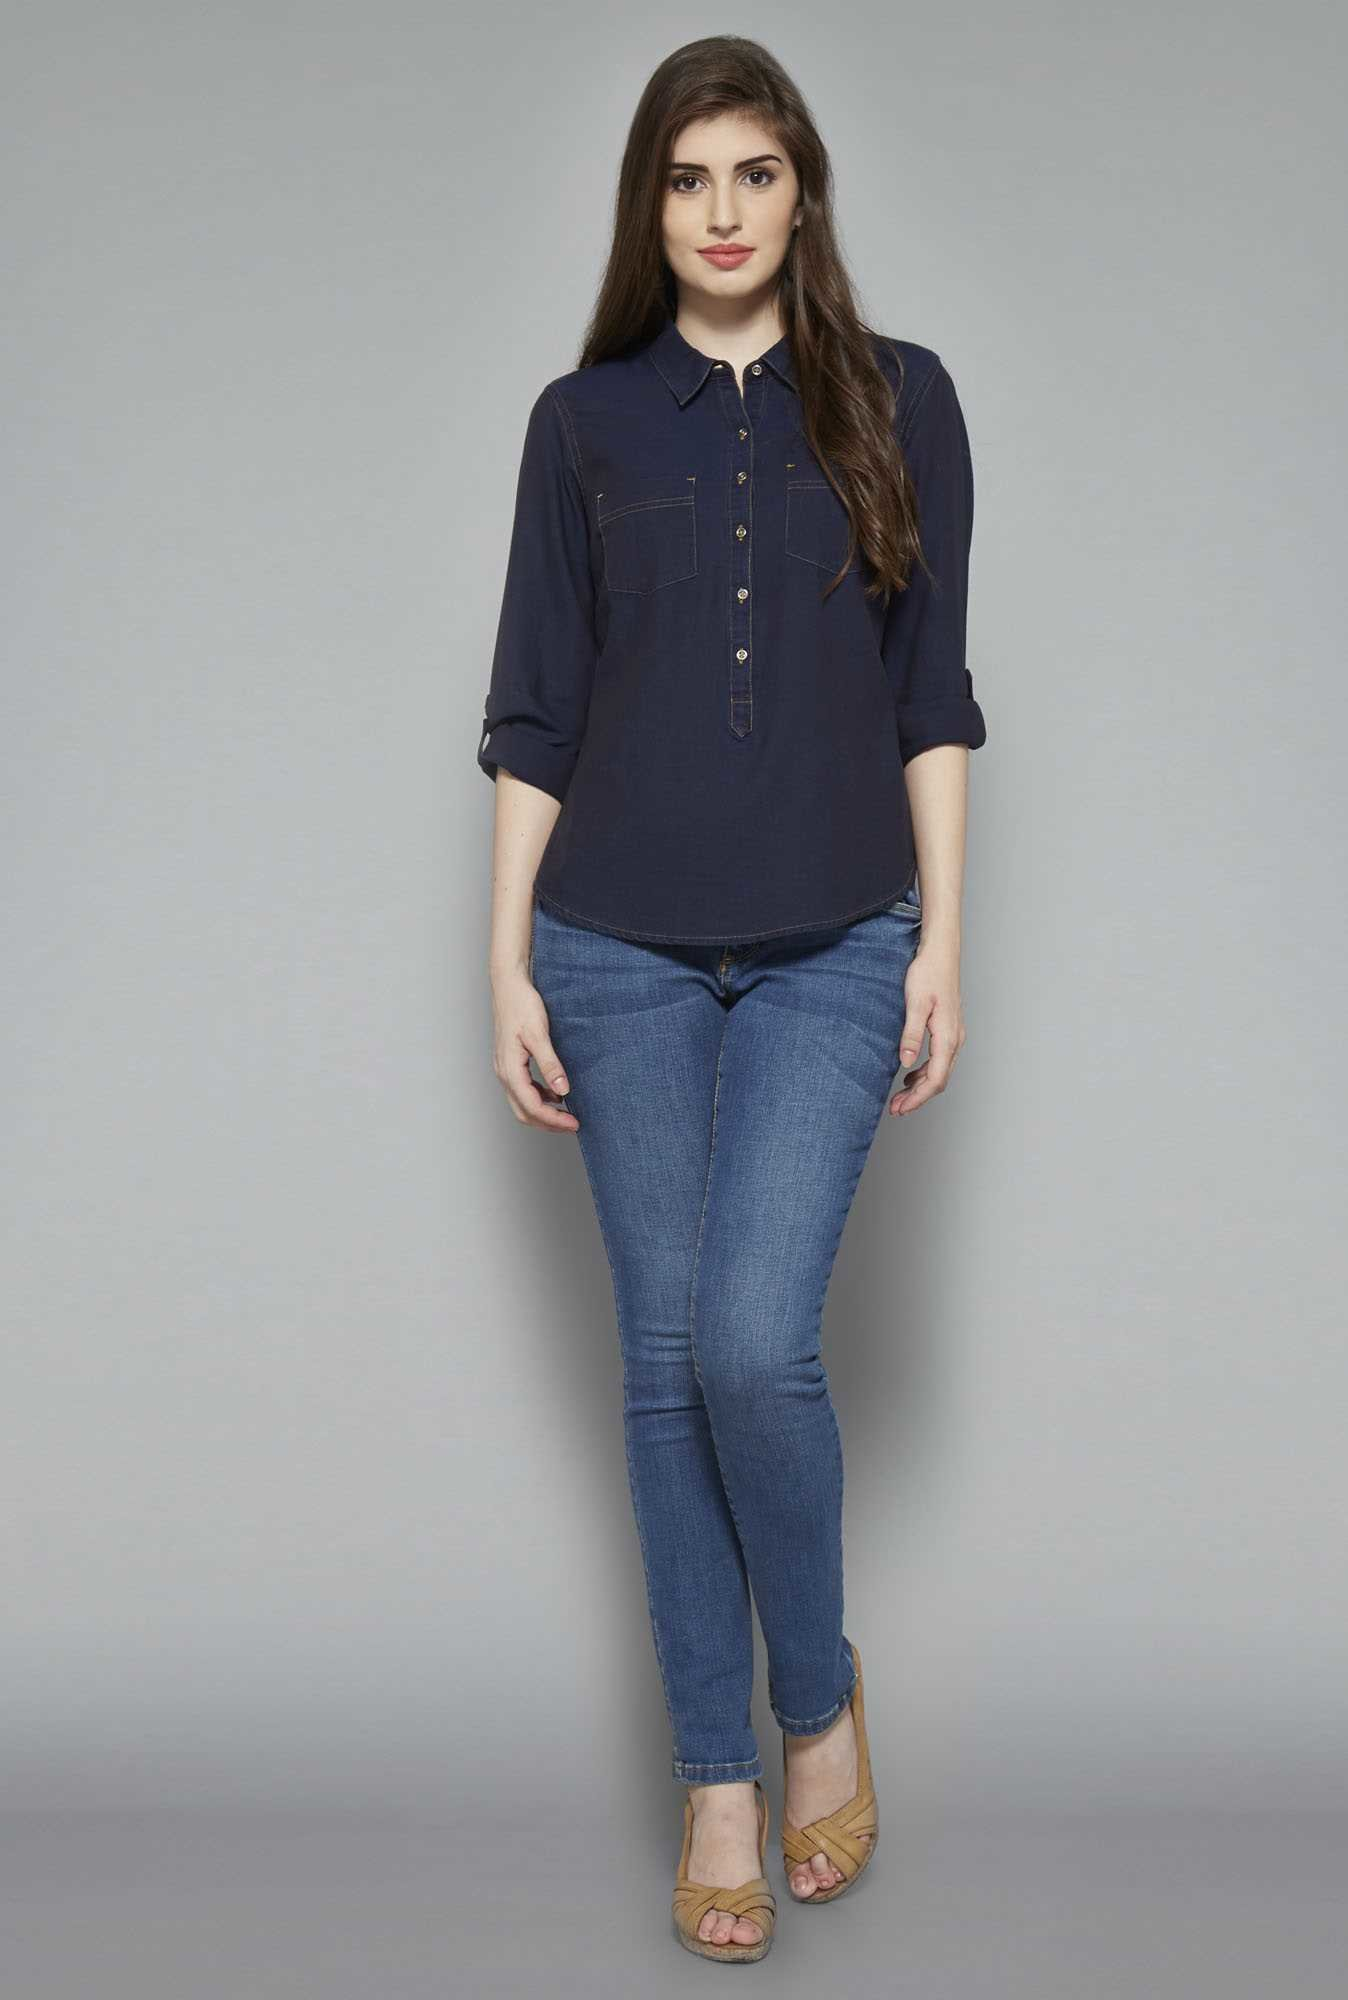 LOV Dark Blue Tanya Blouse